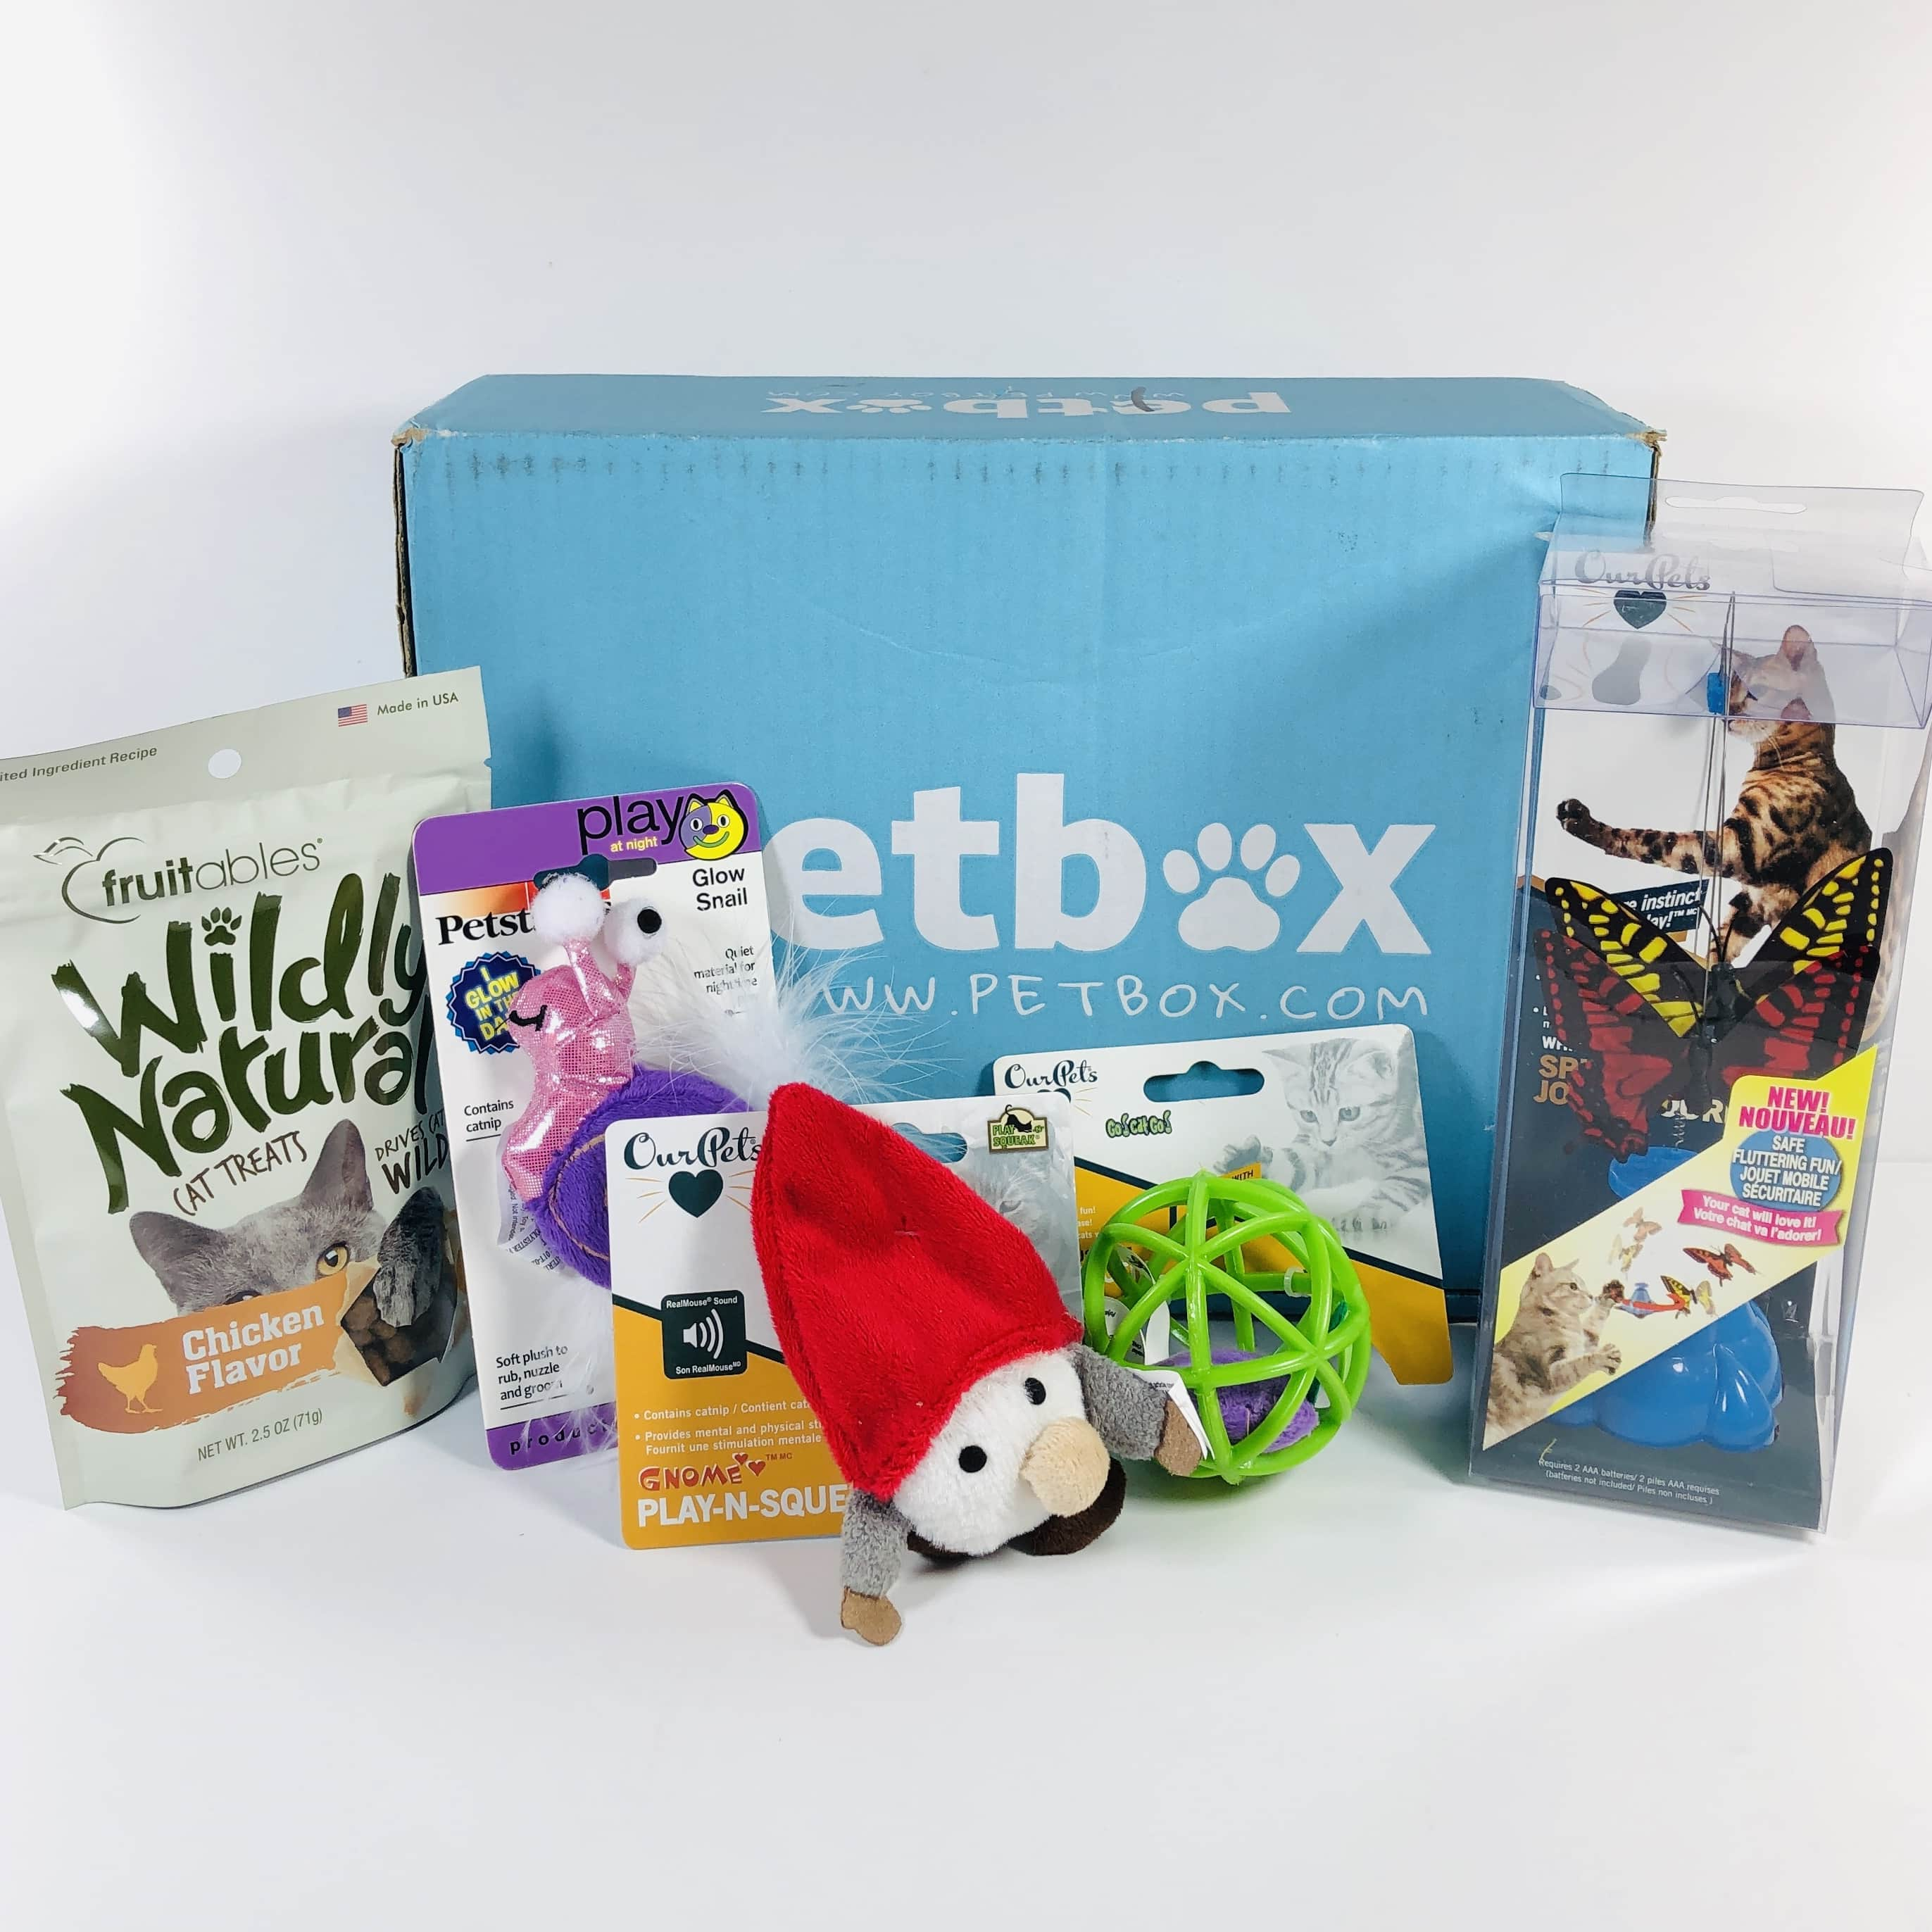 PetBox CAT July 2019 Subscription Review & 50% Off Coupon